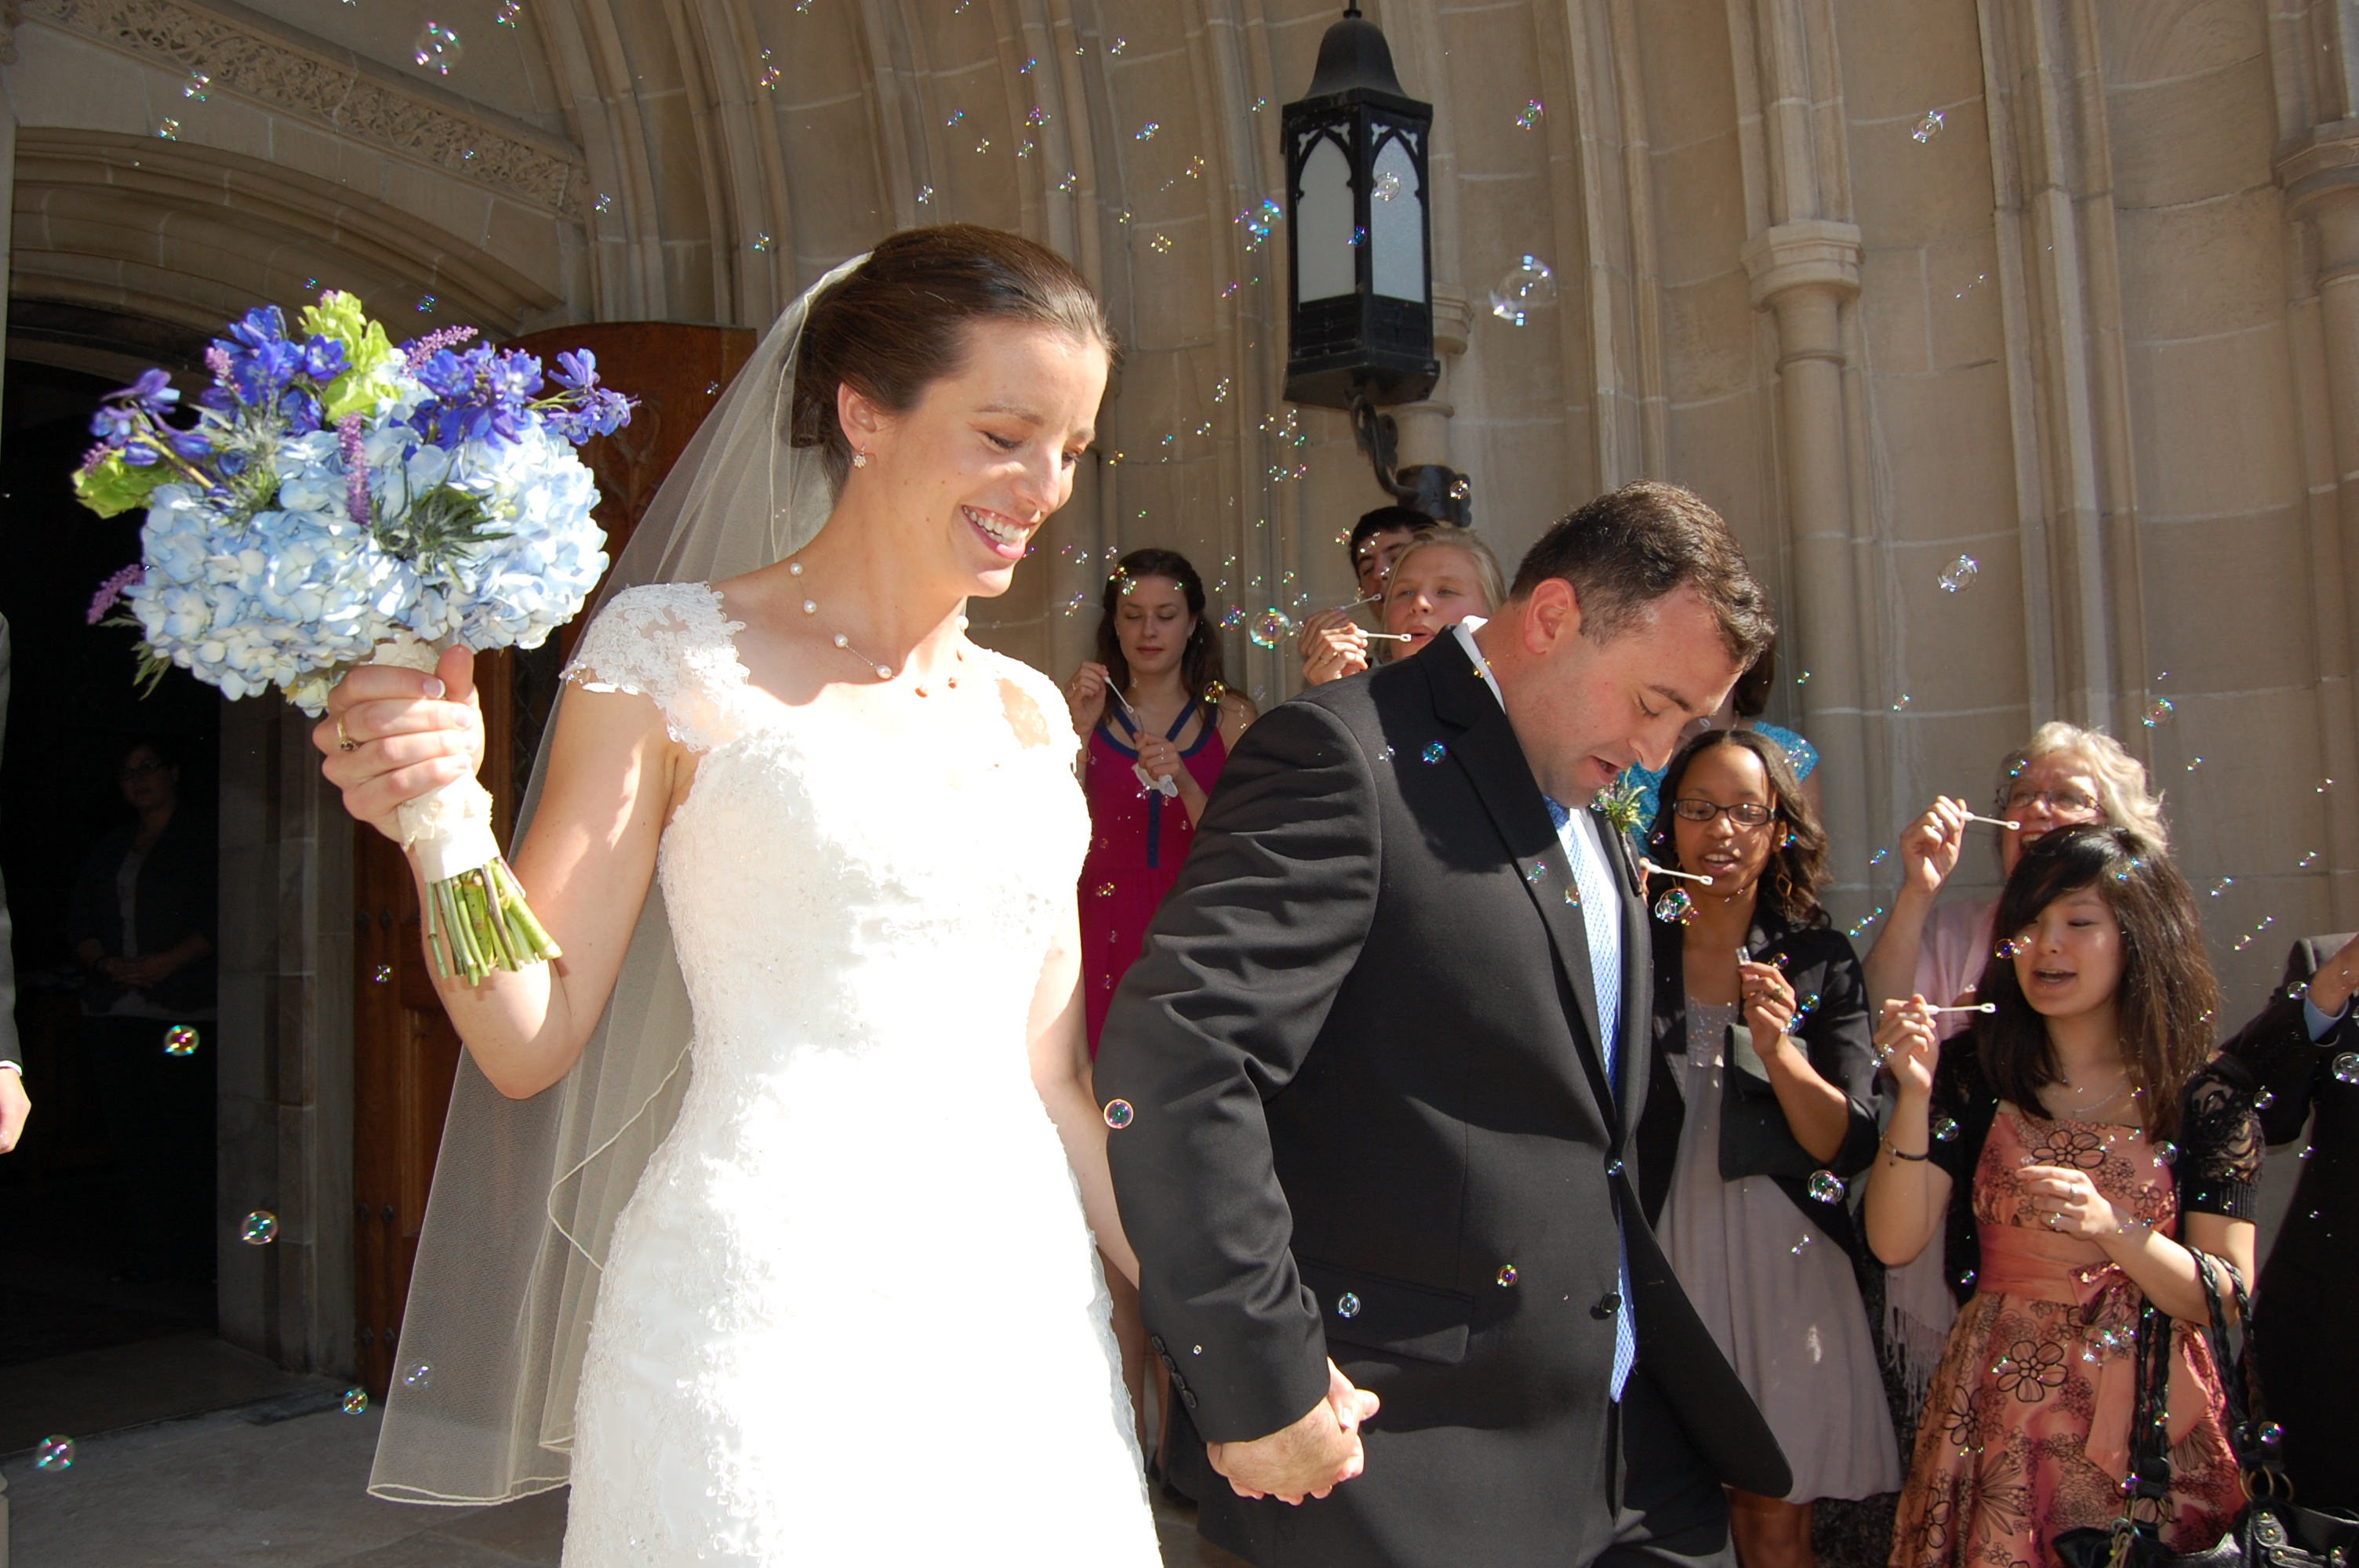 And, for completeness, I can't leave out the sweet wedding of my dear college friend Amy, in September 2012.